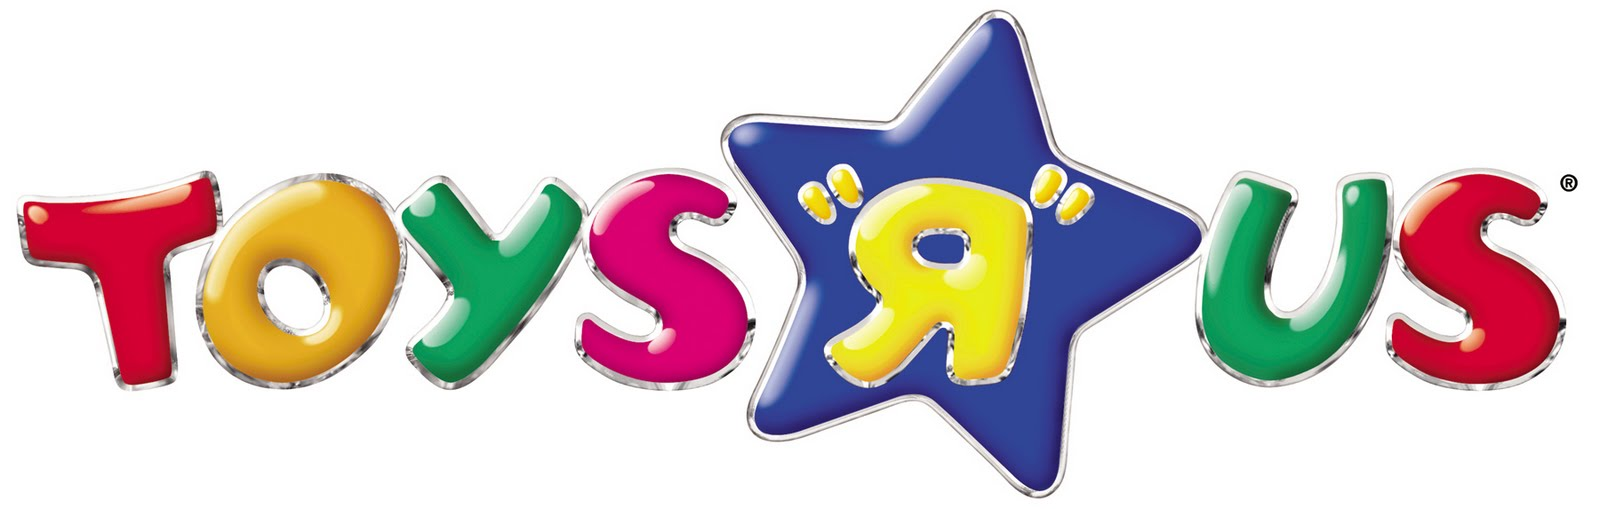 Toys Are Us Logo : Toys r us door buster deals back norcal coupon gal